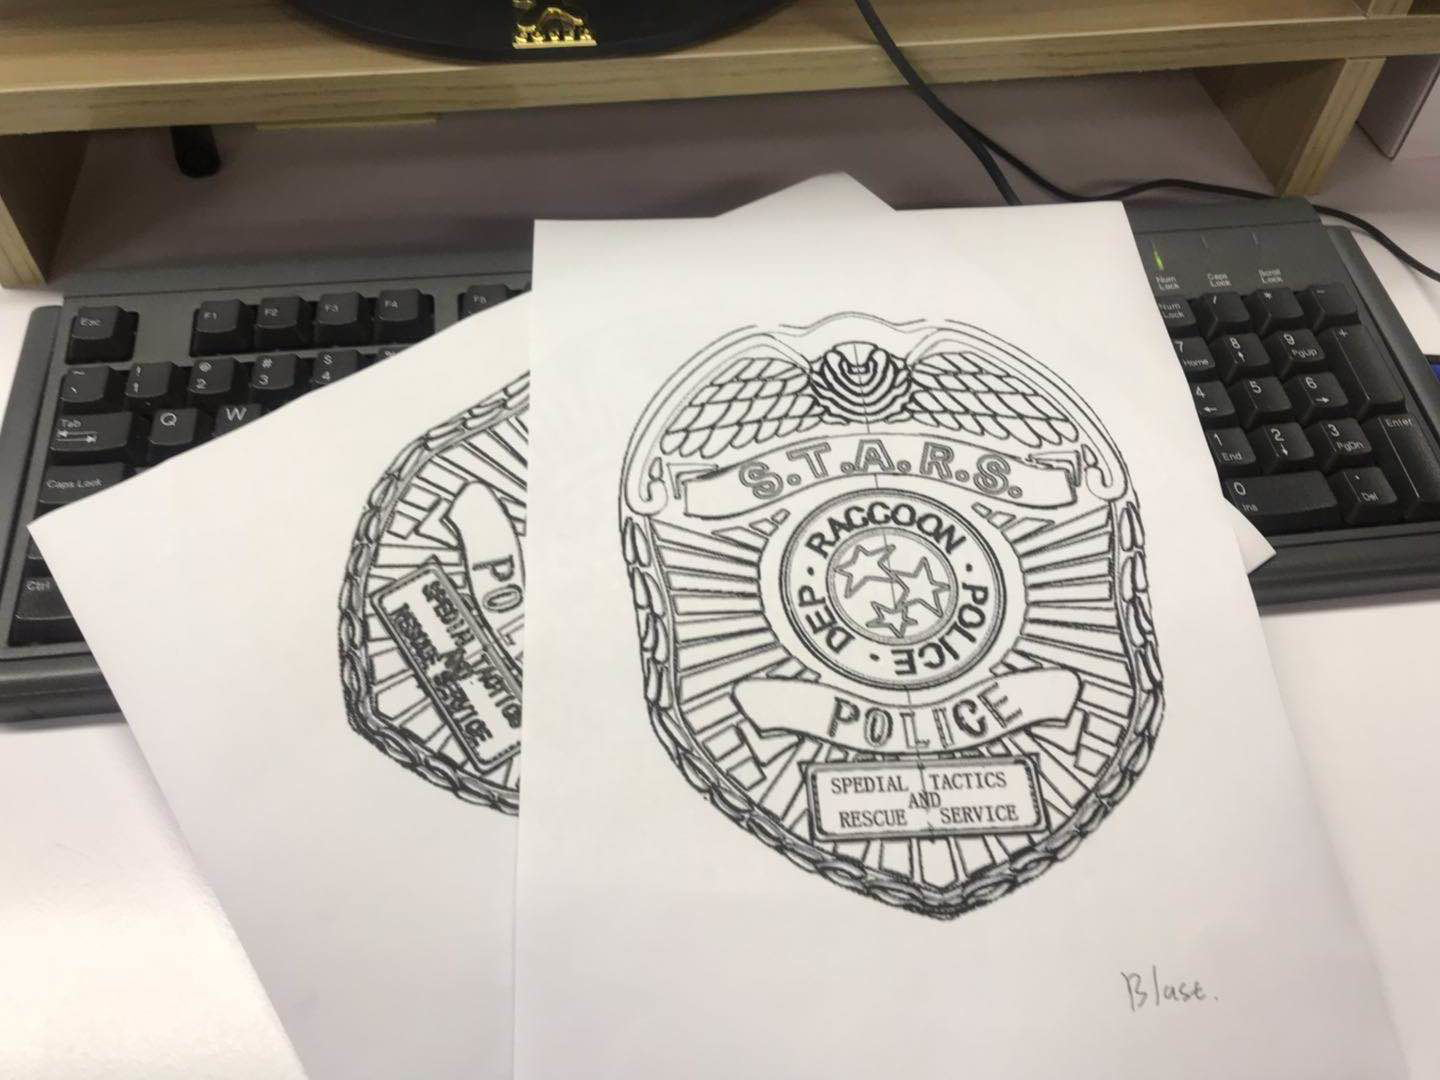 Resident Evil 2 S.T.A.R.S. Badge sketch